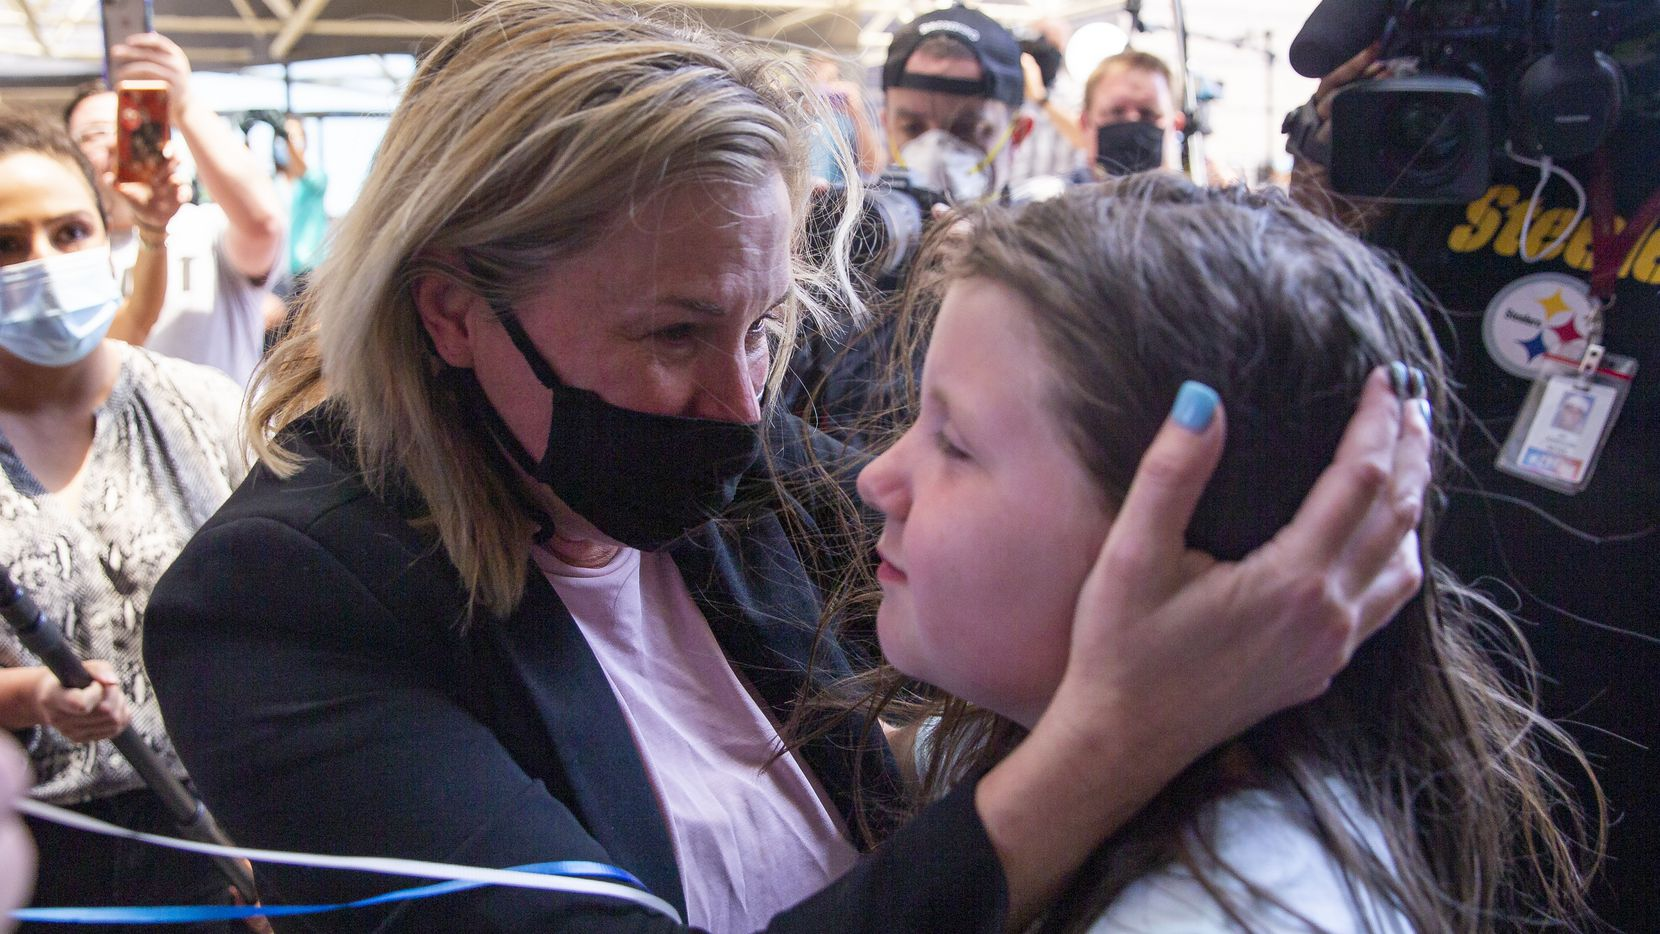 Dallas salon owner Shelley Luther, center, hugs Savannah Holt, 10, of Garland, after Luther was released from the Dallas County Jail on Thursday. The Texas Supreme Court ordered Luther be freed.